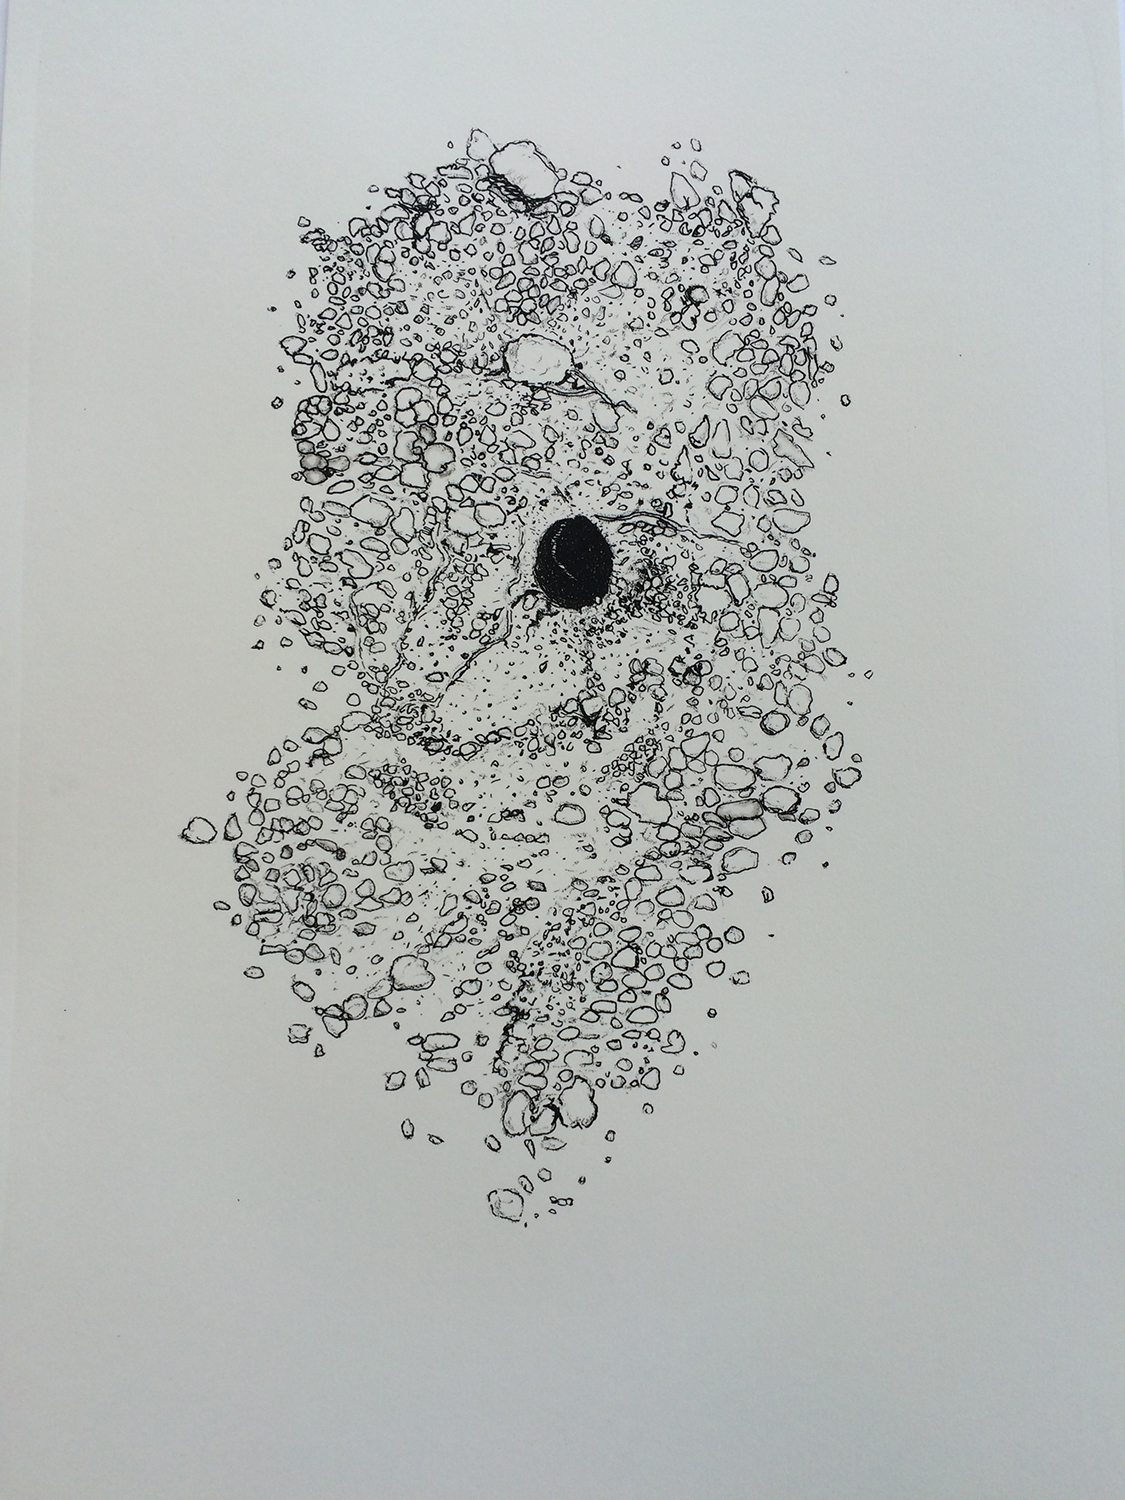 Morag Colquhoun and Lisa Wilkens, solitary bee, 2016, edition of 10 stone lithograph prints on Southbank paper, 28 x 38cm